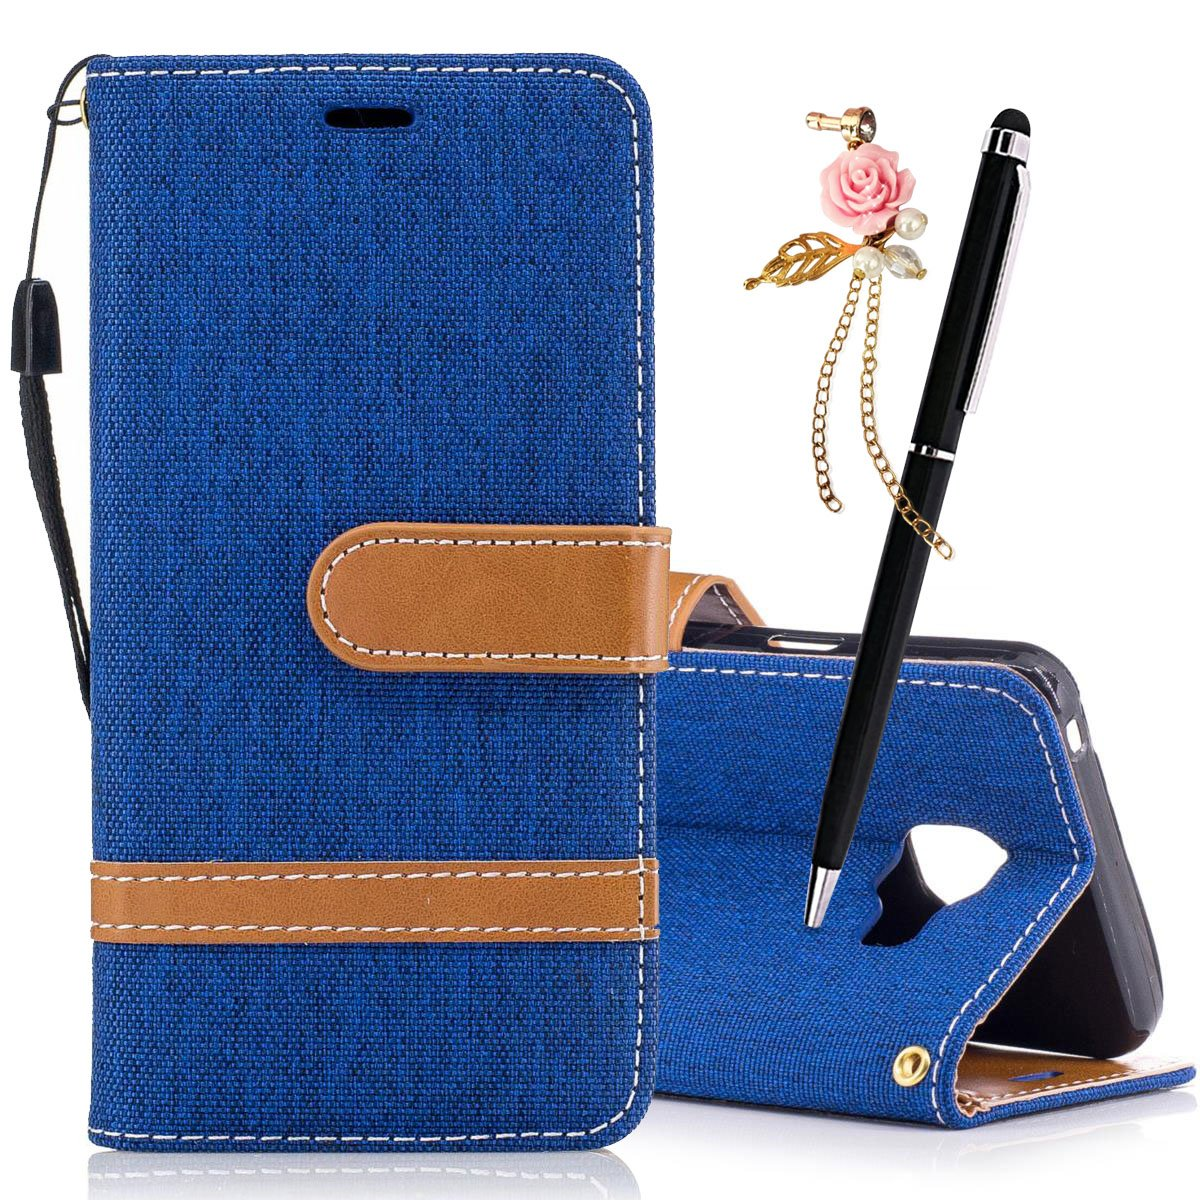 MEETER Coque PU Cuir pour Samsung Galaxy A3 2016 Etui Pochette Portable Flip Wallet Housse Mode Bookstyle Case Porte Carte Cas Back Cover Souple Fonction Stand Spécial Magnetique Dustproof Protective Fente de Carte - Bleu foncé